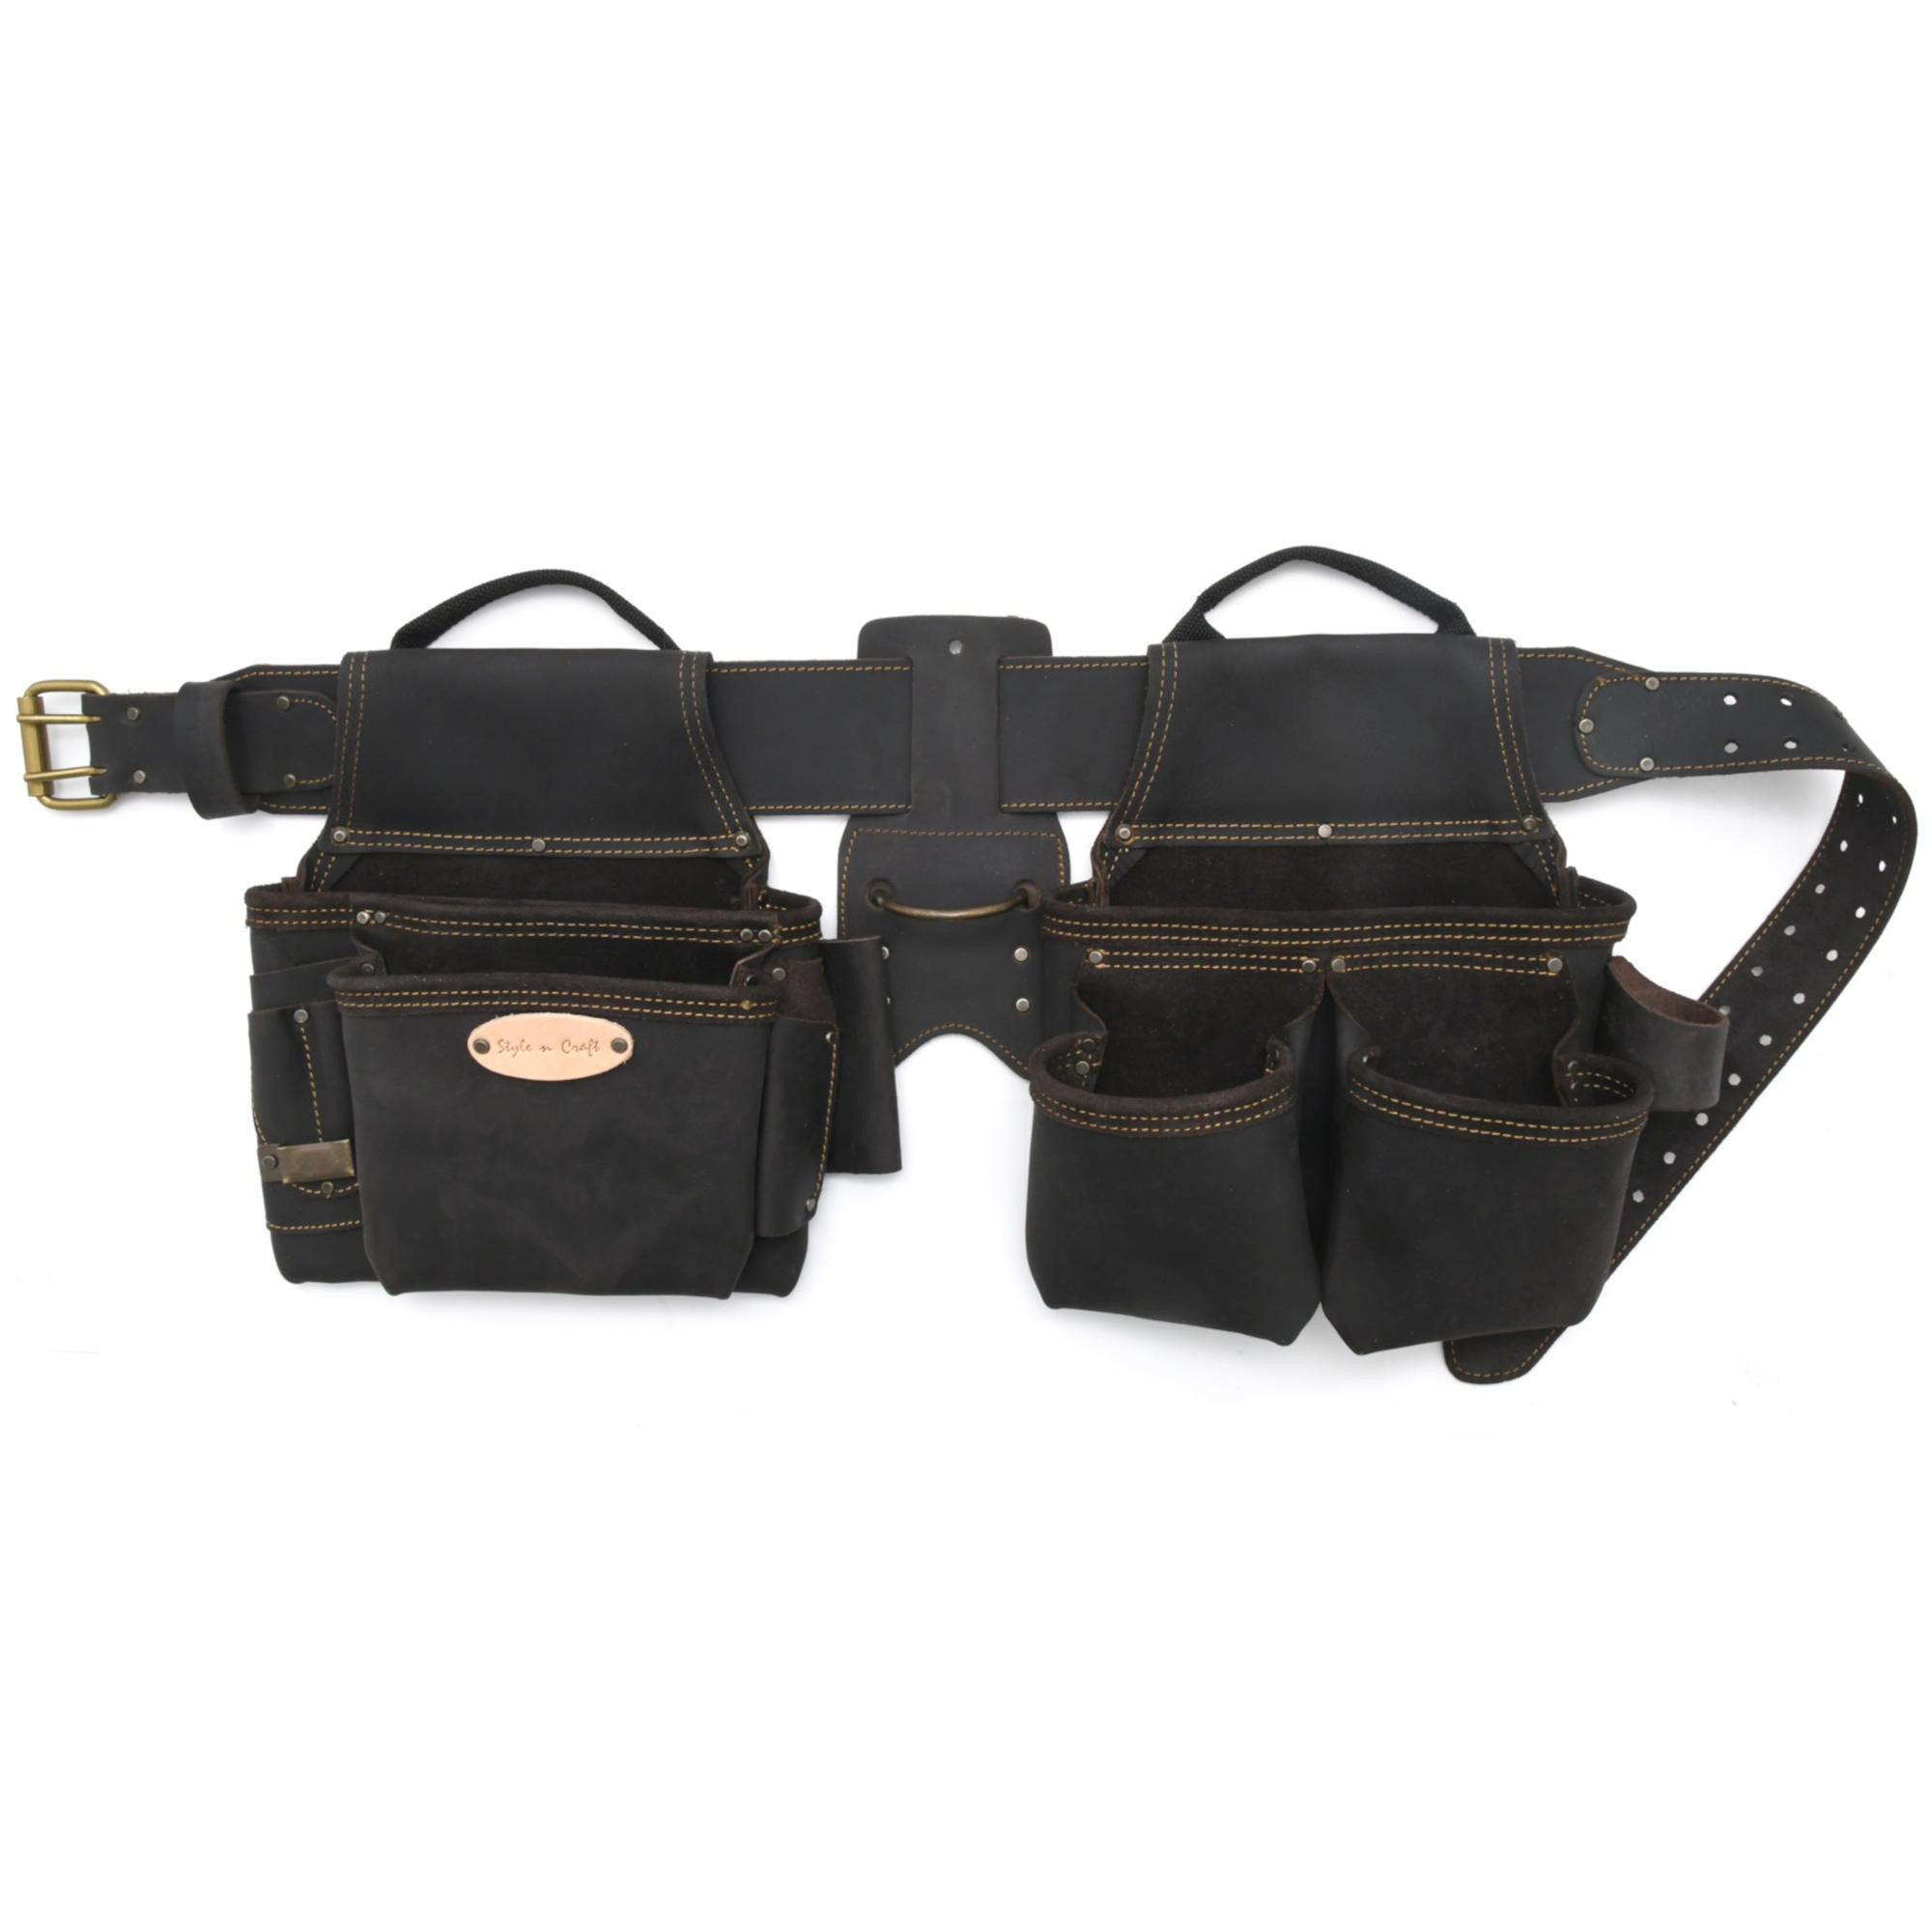 Style n Craft 90429 - 4 Piece 17 Pocket Pro Framer's Combo in Dark Brown Color Top Grain Oiled Leather with 3 inch wide Tapered Leather Belt with Double Prong Metal Roller Buckle - Front View